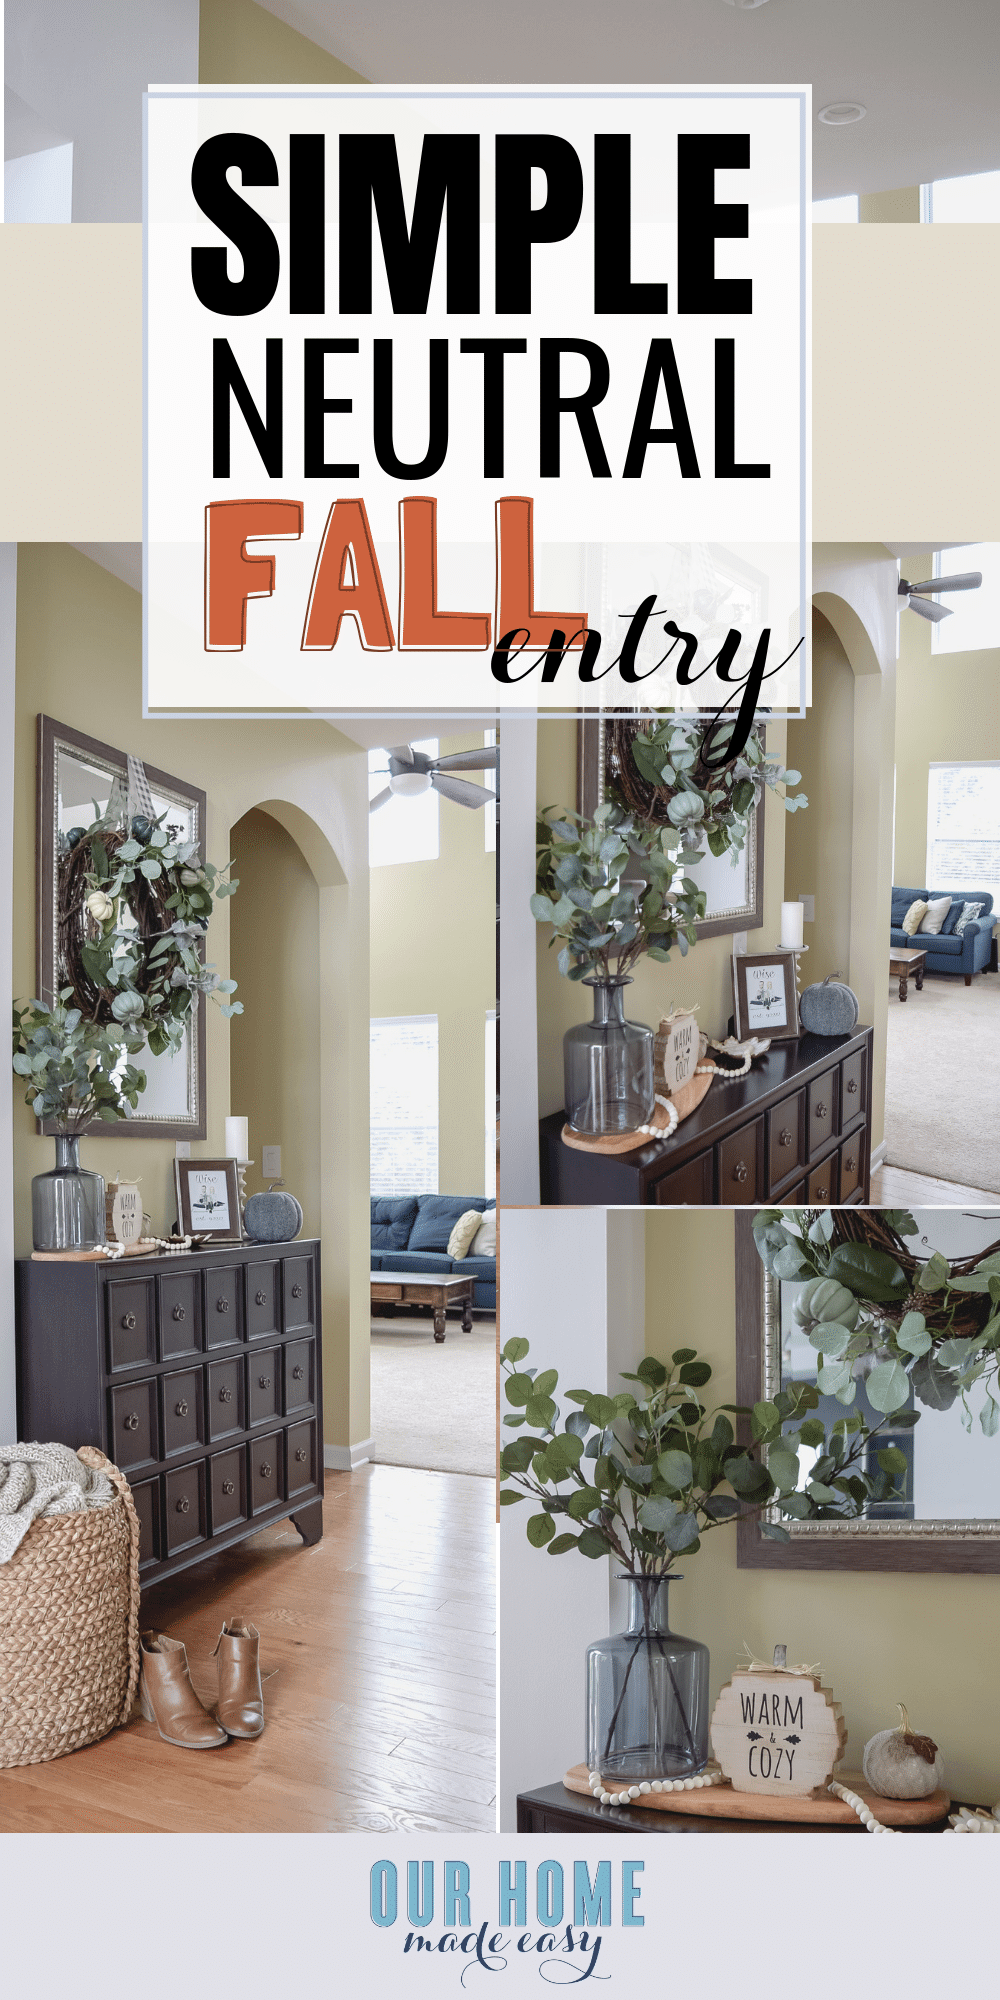 Use this quick tip to decorate your fall entryway home decor without using too many seasonal items! Save money & time. Click to see the entryway! #fall #home #fallhome #cozyhom